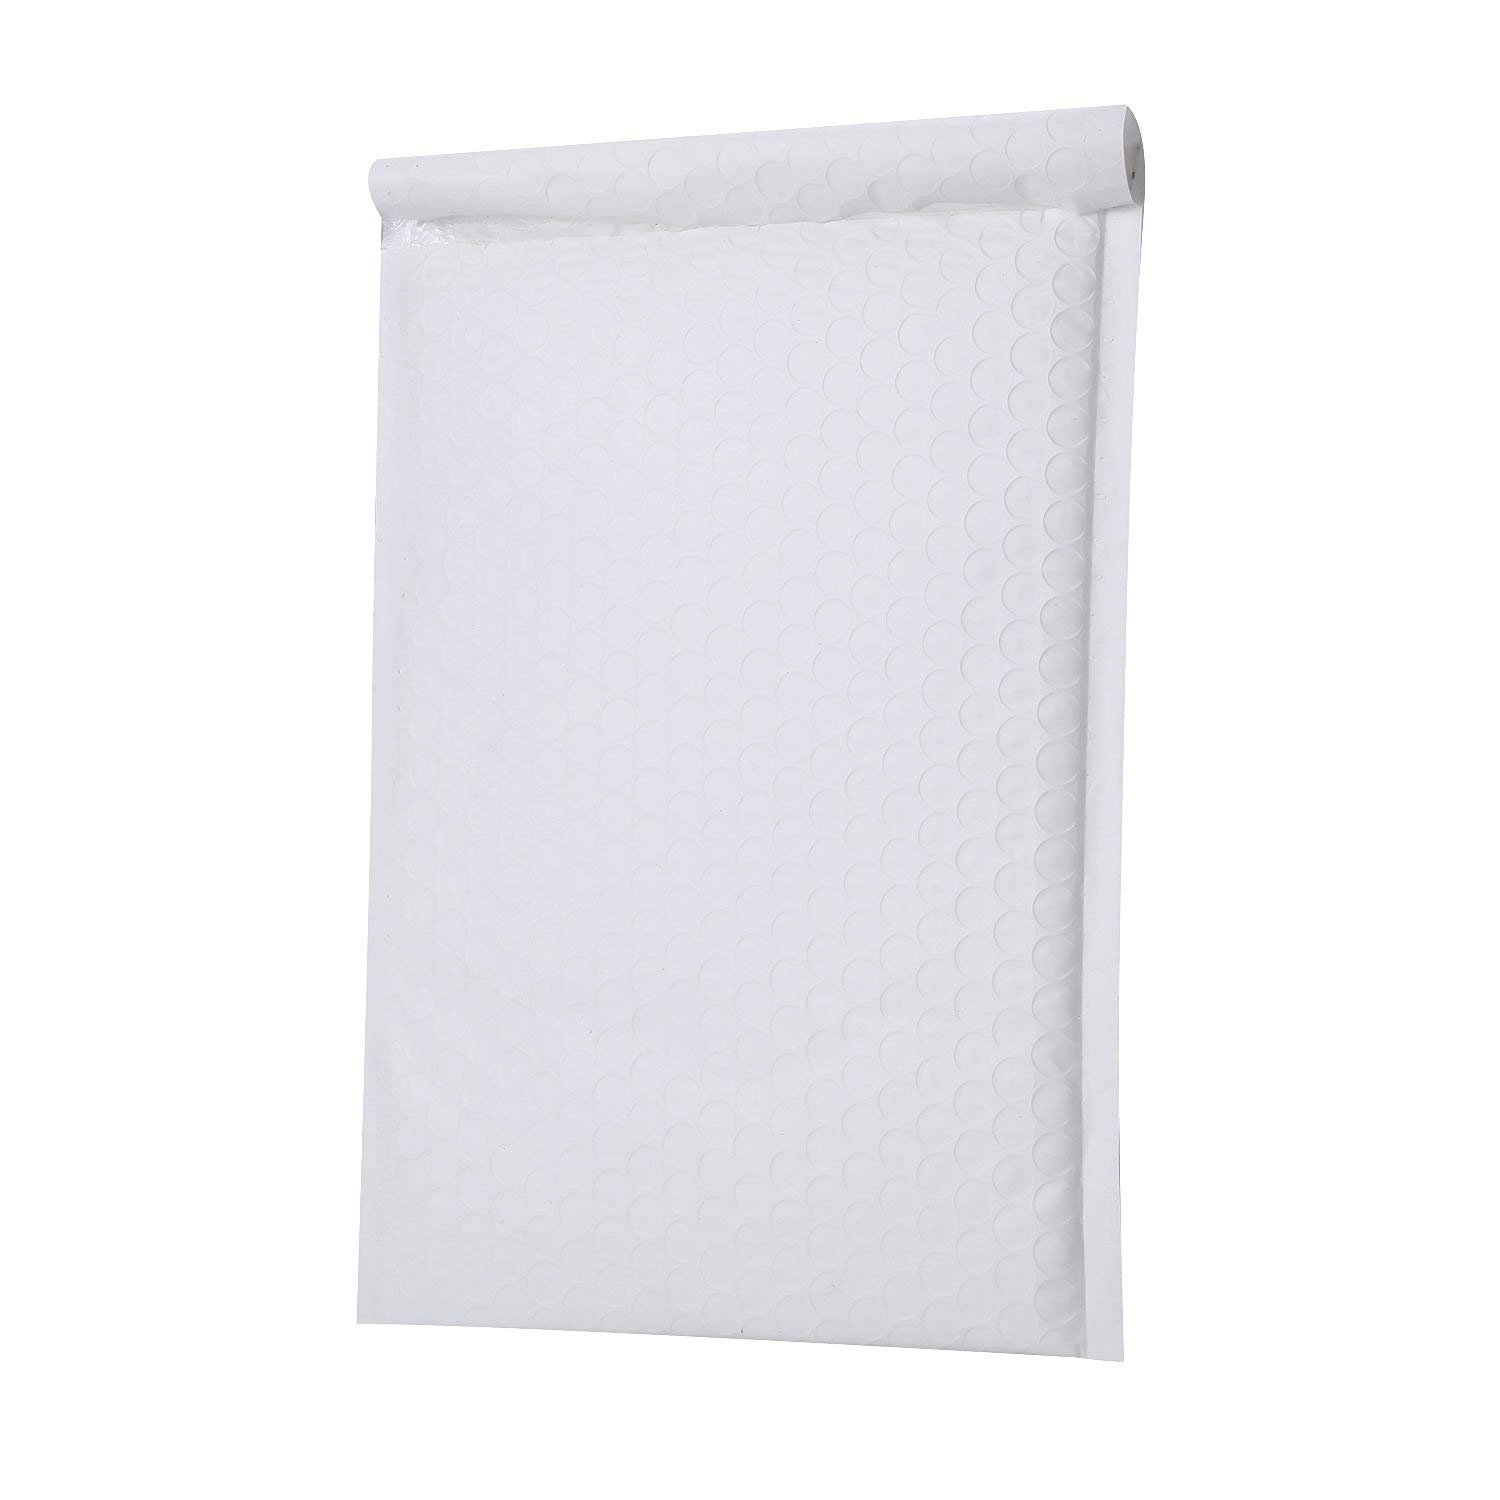 Yomuse #3 Extra Wide 9.45 x 13 Poly Bubble Mailer Self-Seal Padded Envelopes fit A4 Paper, Pack of 25, Purple